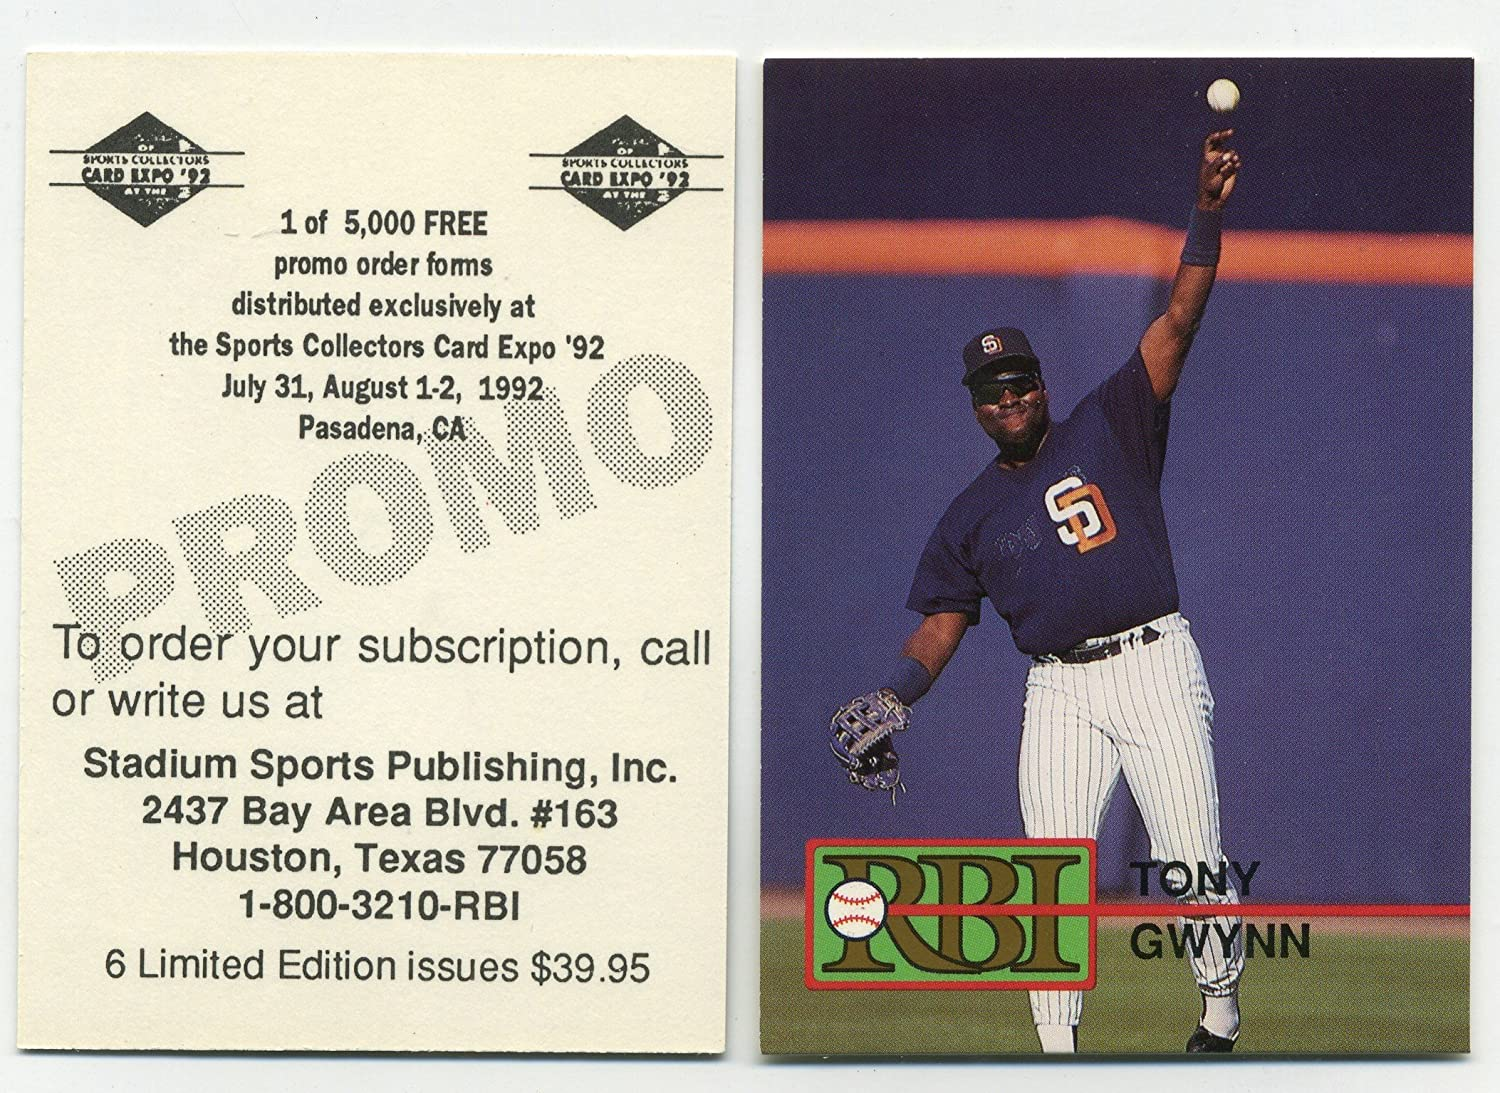 Amazoncom Tony Gwynn 1992 Rbi Baseball Card Gold